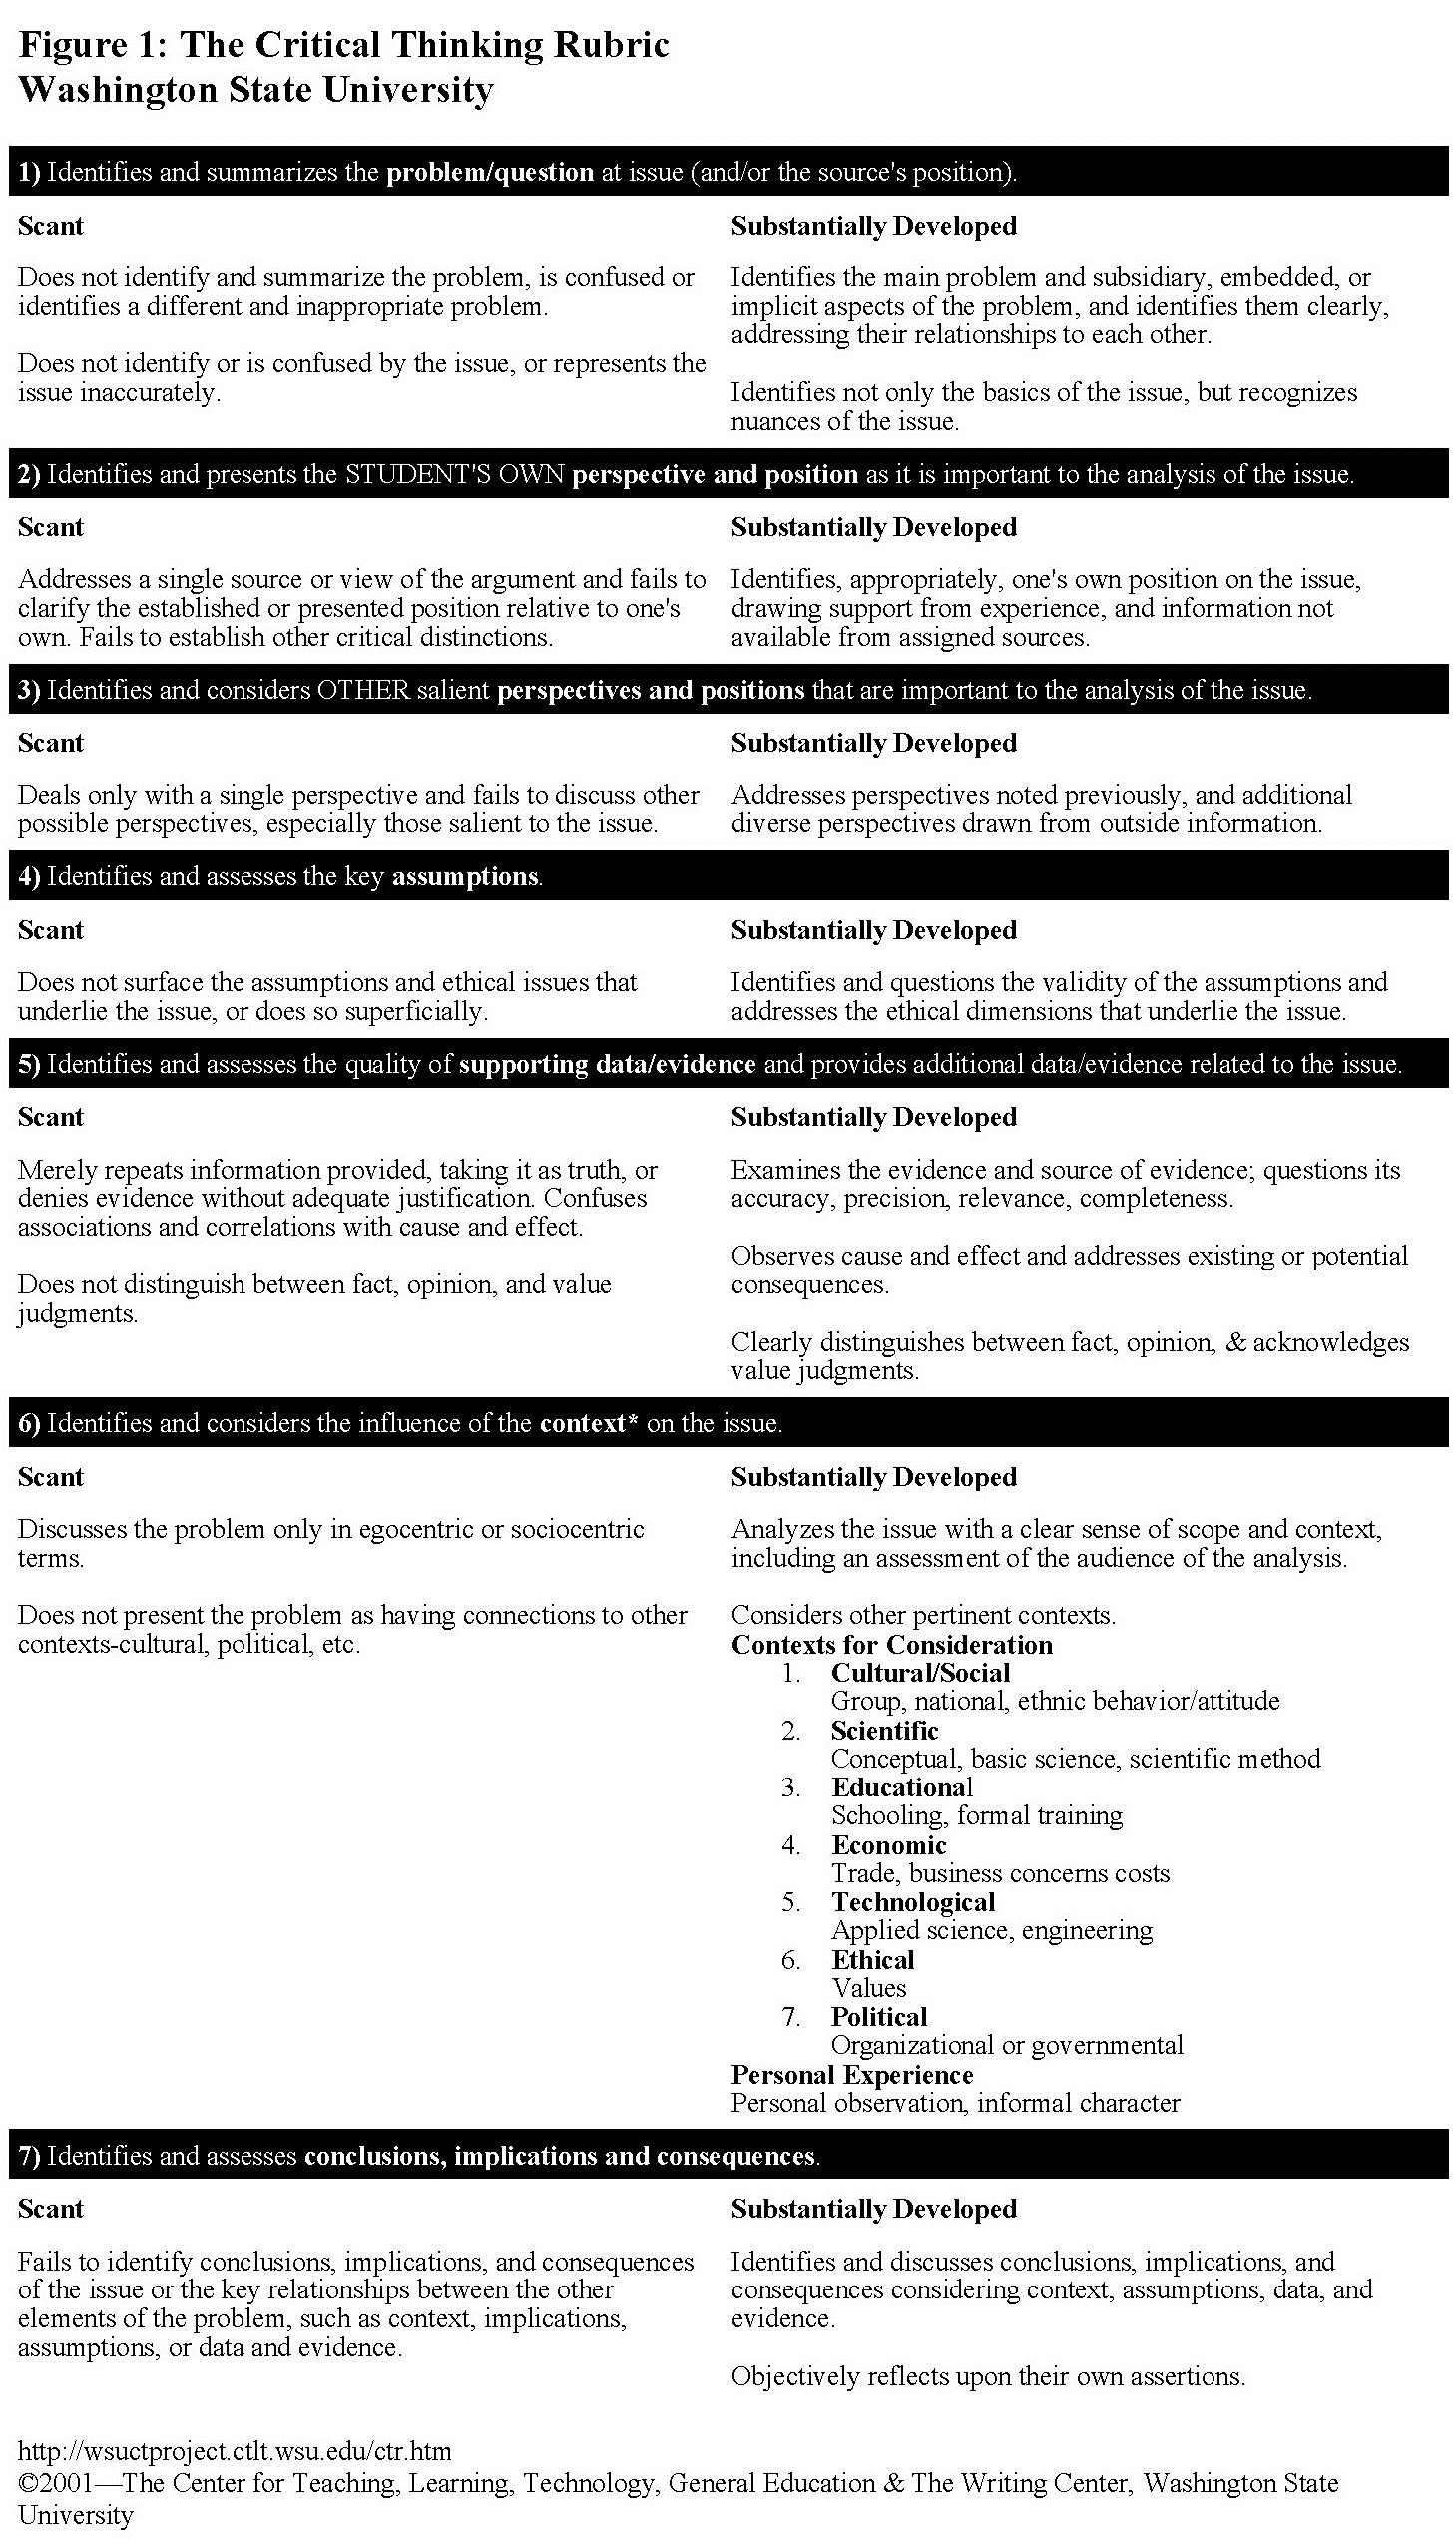 Middle and High Schools Critical Thinking Rubric   Intellectual     SlideShare Middle and High Schools Critical Thinking Rubric